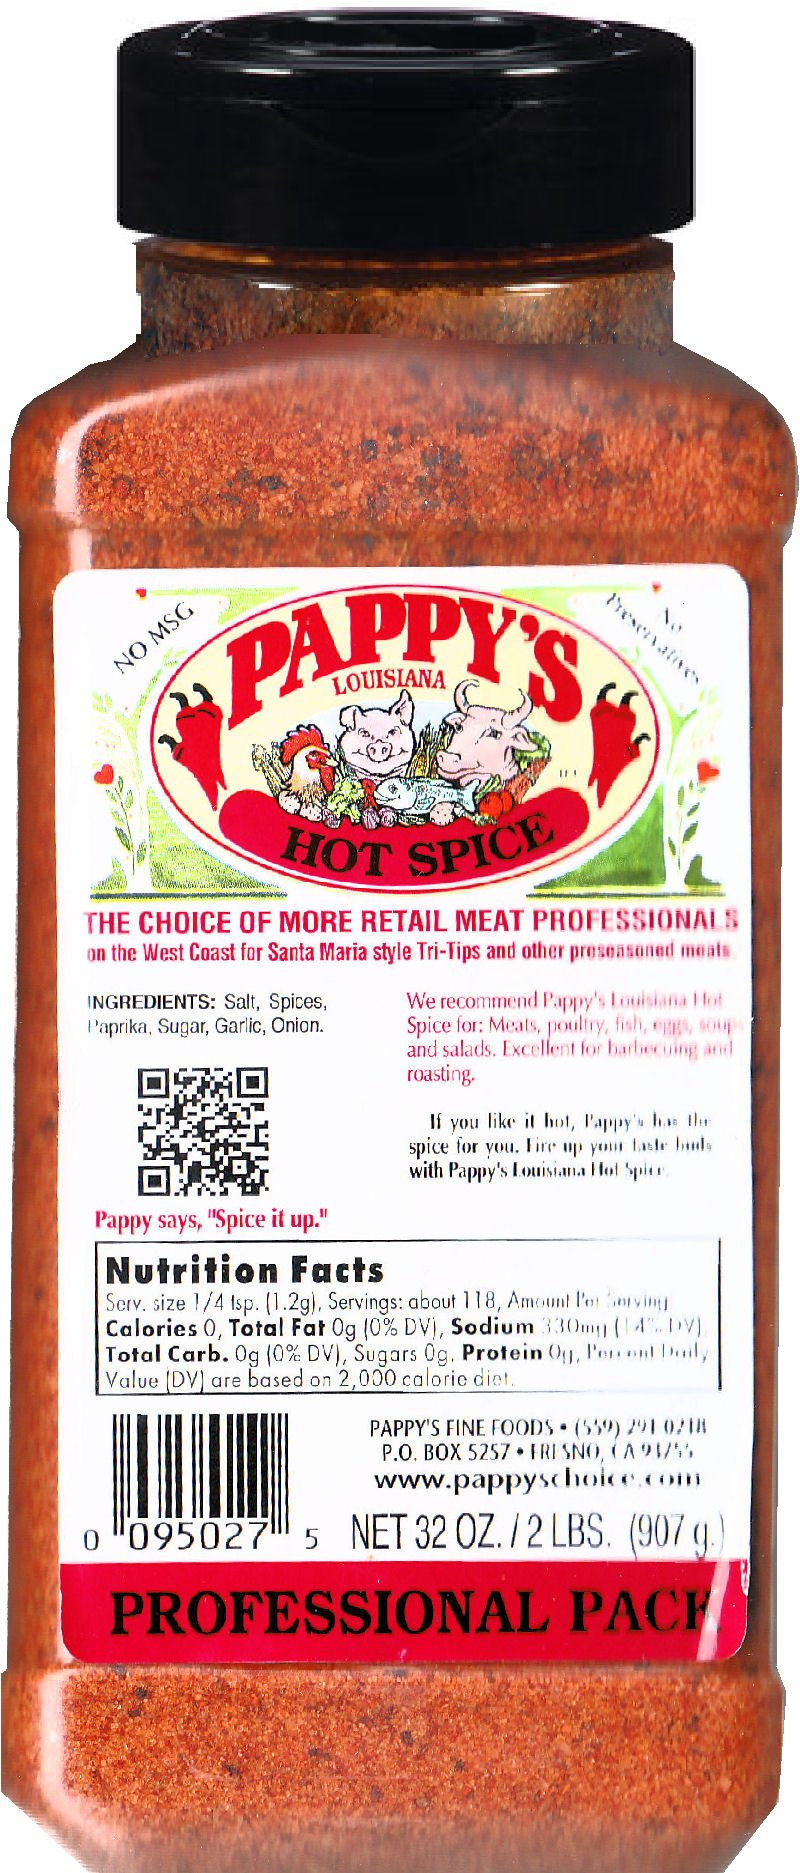 Pappy's Choice Seasoning - LOUISIANA HOT SPICE - (32 Oz Professional Pack)